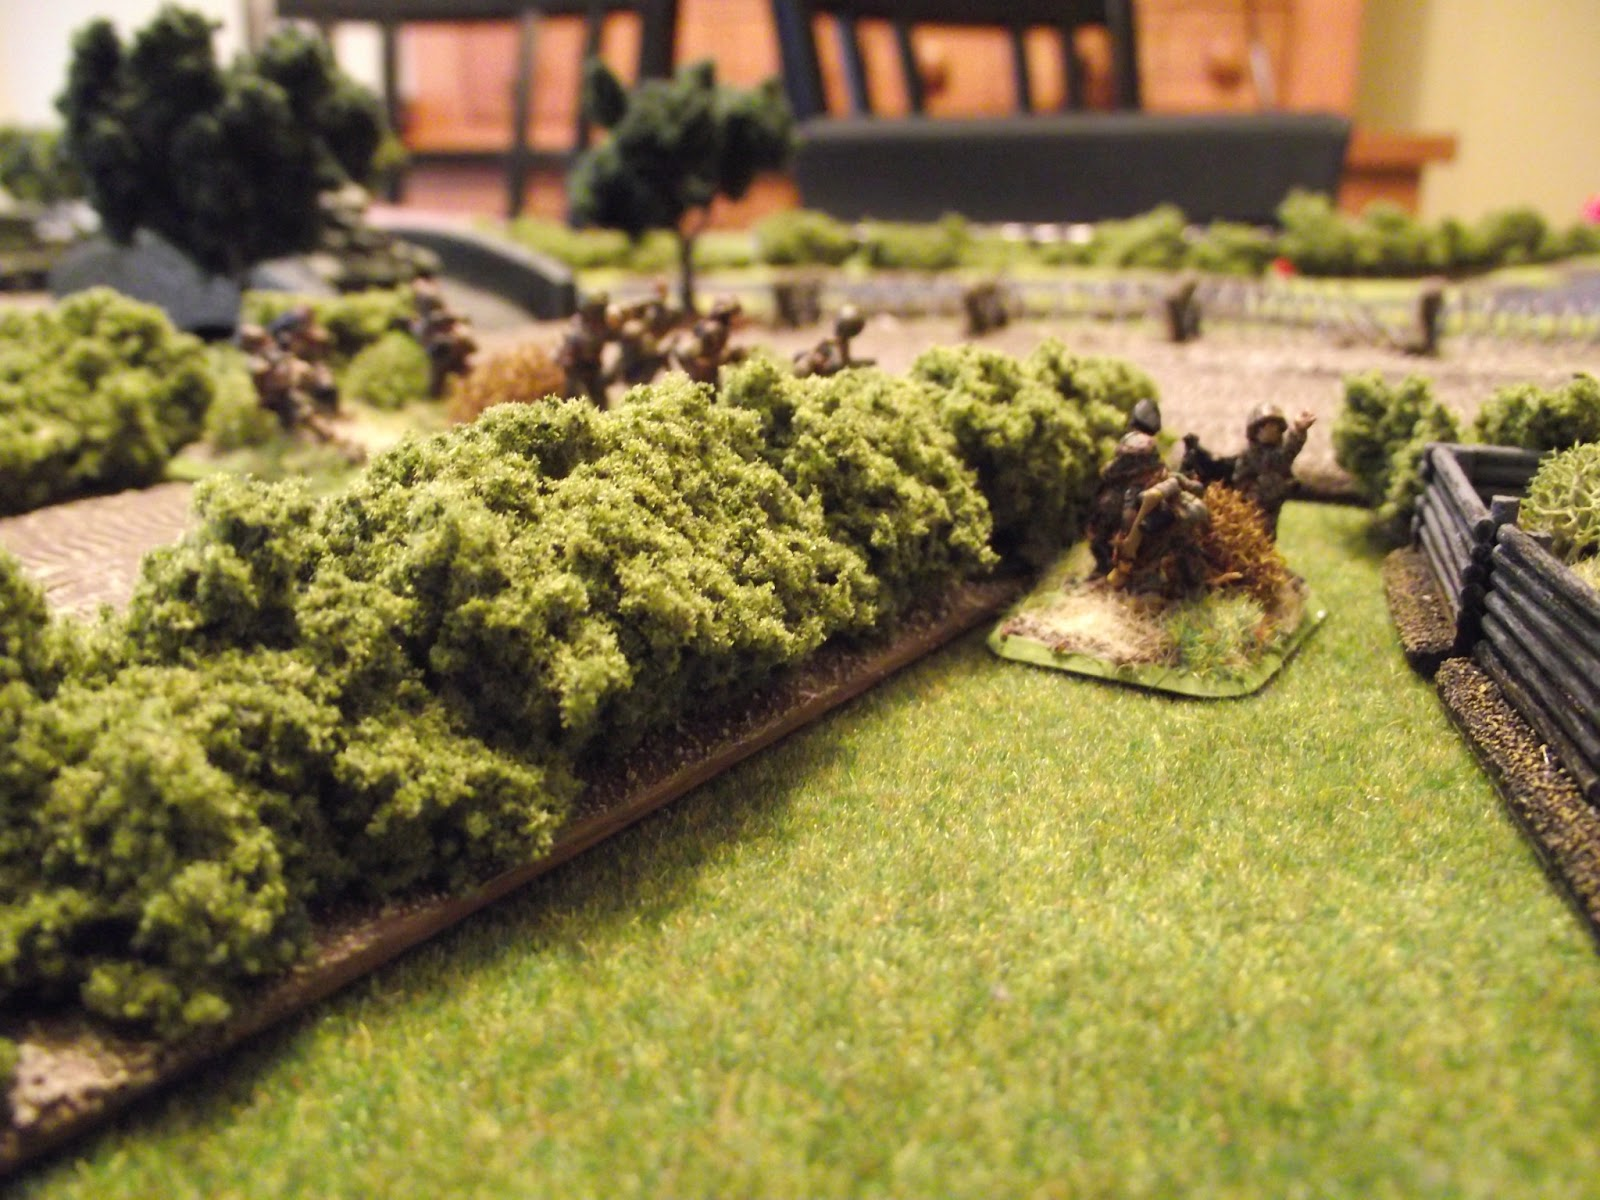 A shot of German platoon two, defending the objective.